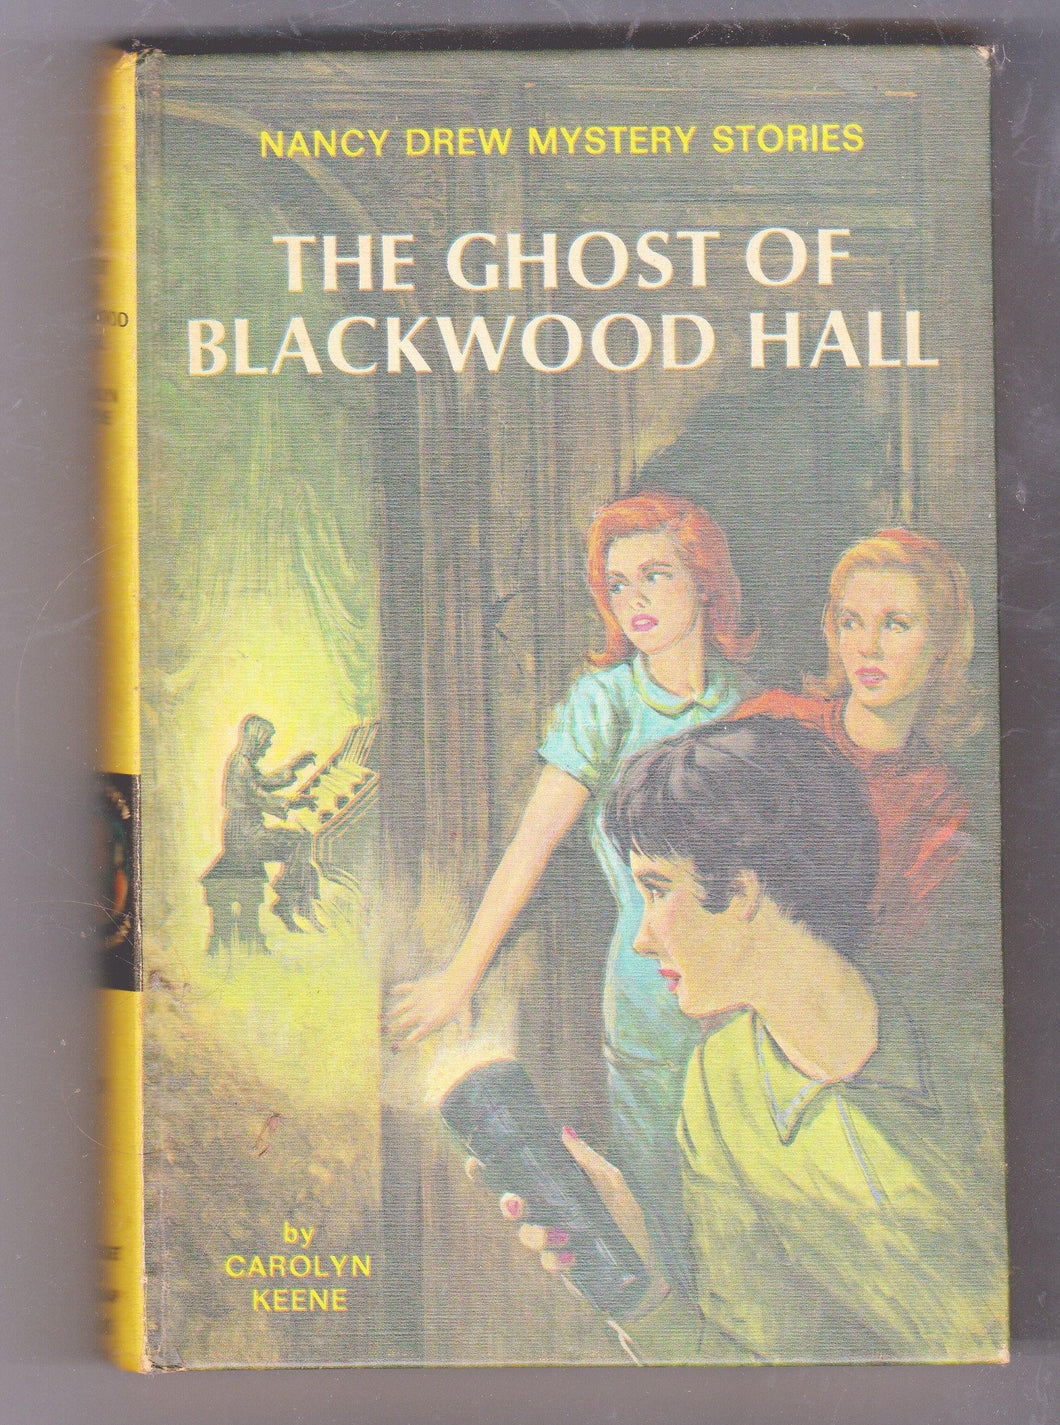 The Ghost of Blackwood Hall Nancy Drew Mystery Stories Carolyn Keene Hardcover Book 1971 - TulipStuff